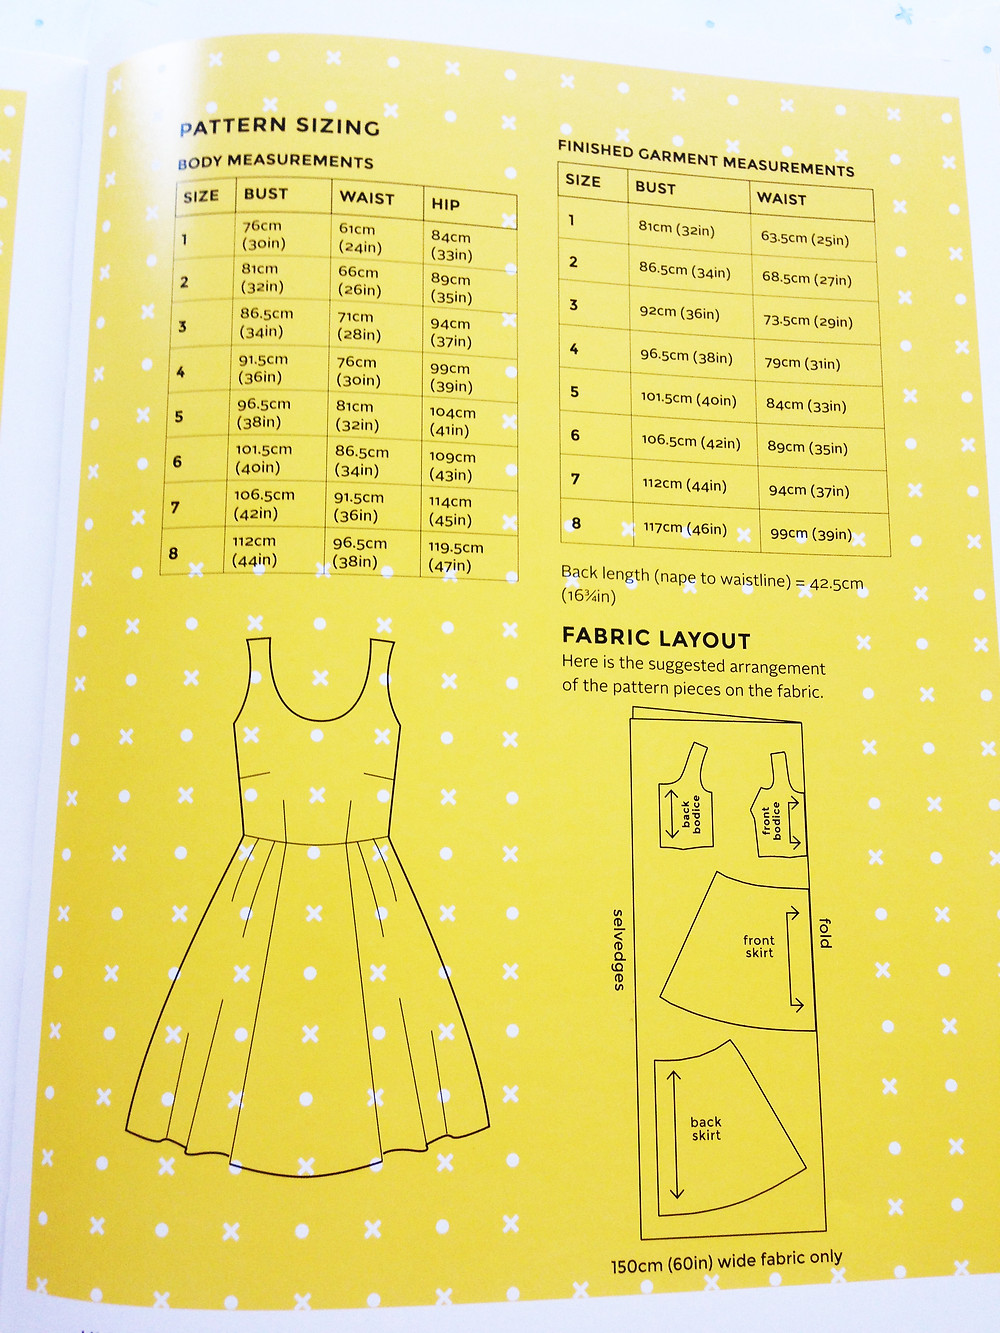 sew retro guide to sewing patterns